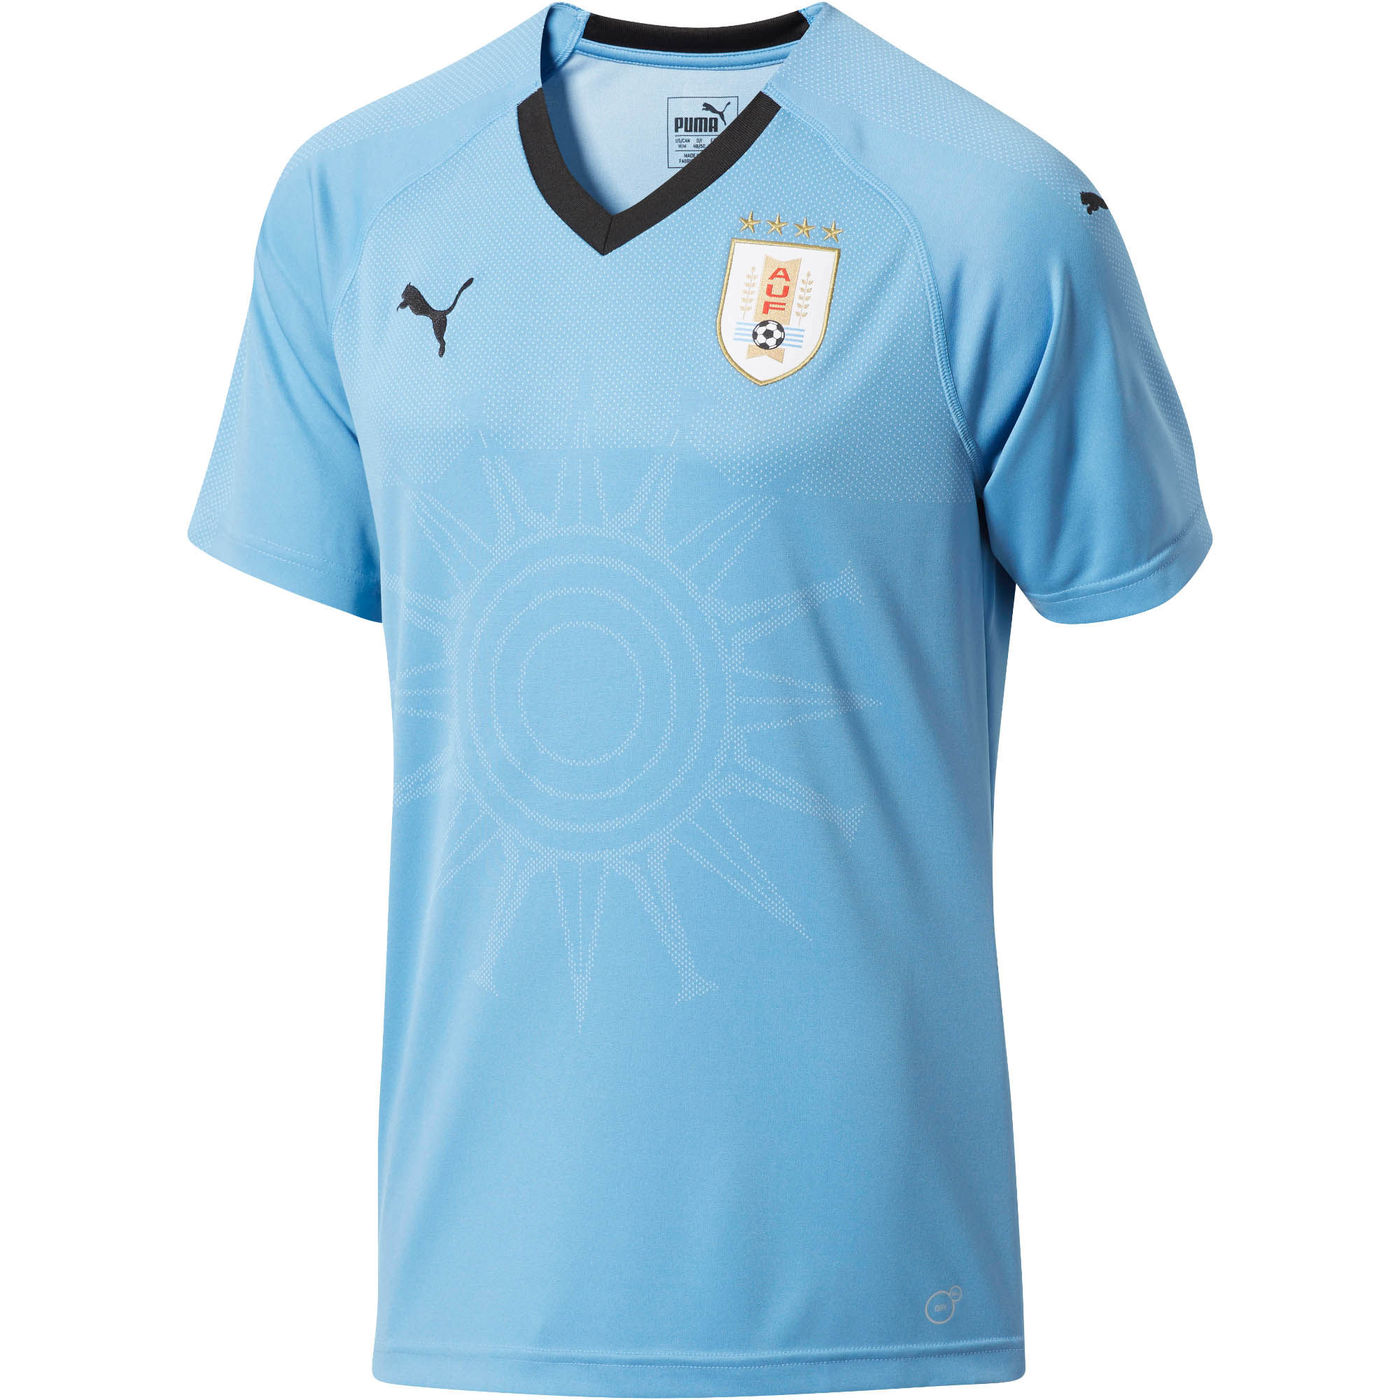 2018-2019 Uruguay Home Puma Football Shirt b6aba373e